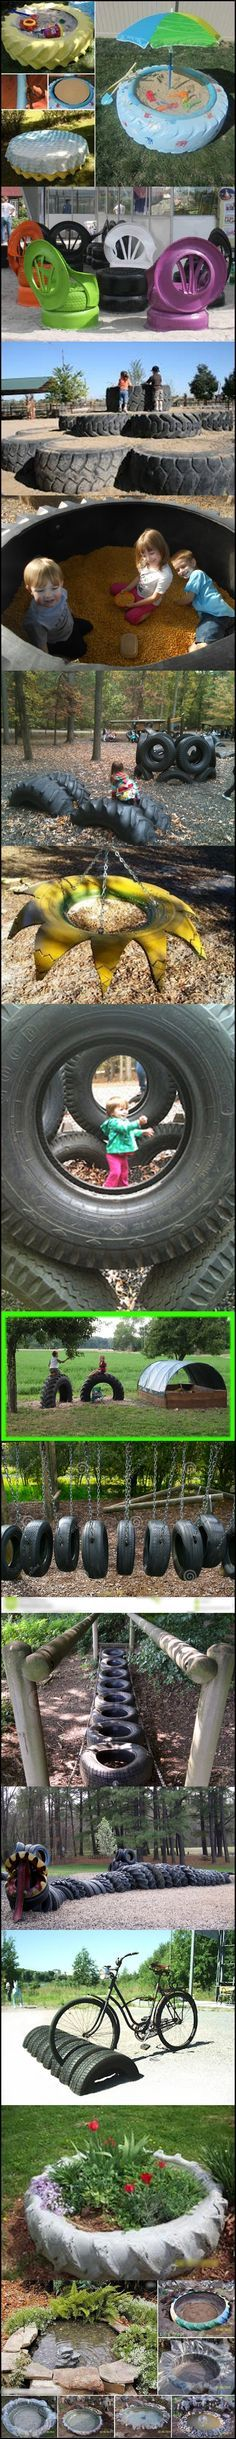 10-ways-to-reuse-old-tires#diy #recycling